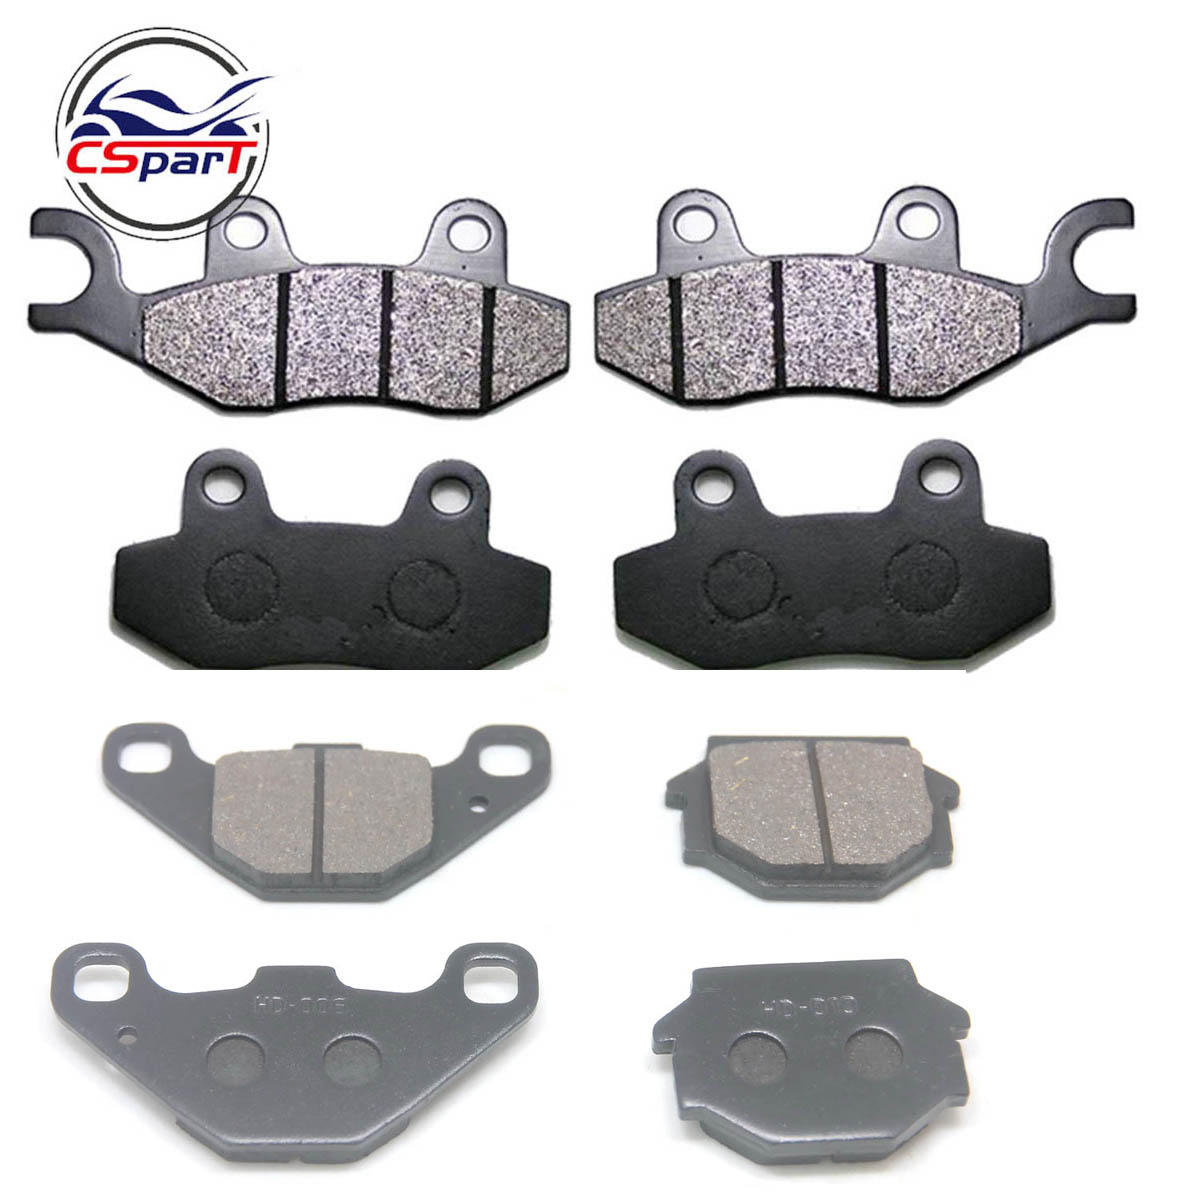 4 Sets Front  Brake Pad For CFMoto UFORCE CF500 500 550 800 U5 U8 500CC 800CC UTV 9060-080910 9060-080810 7030-081520